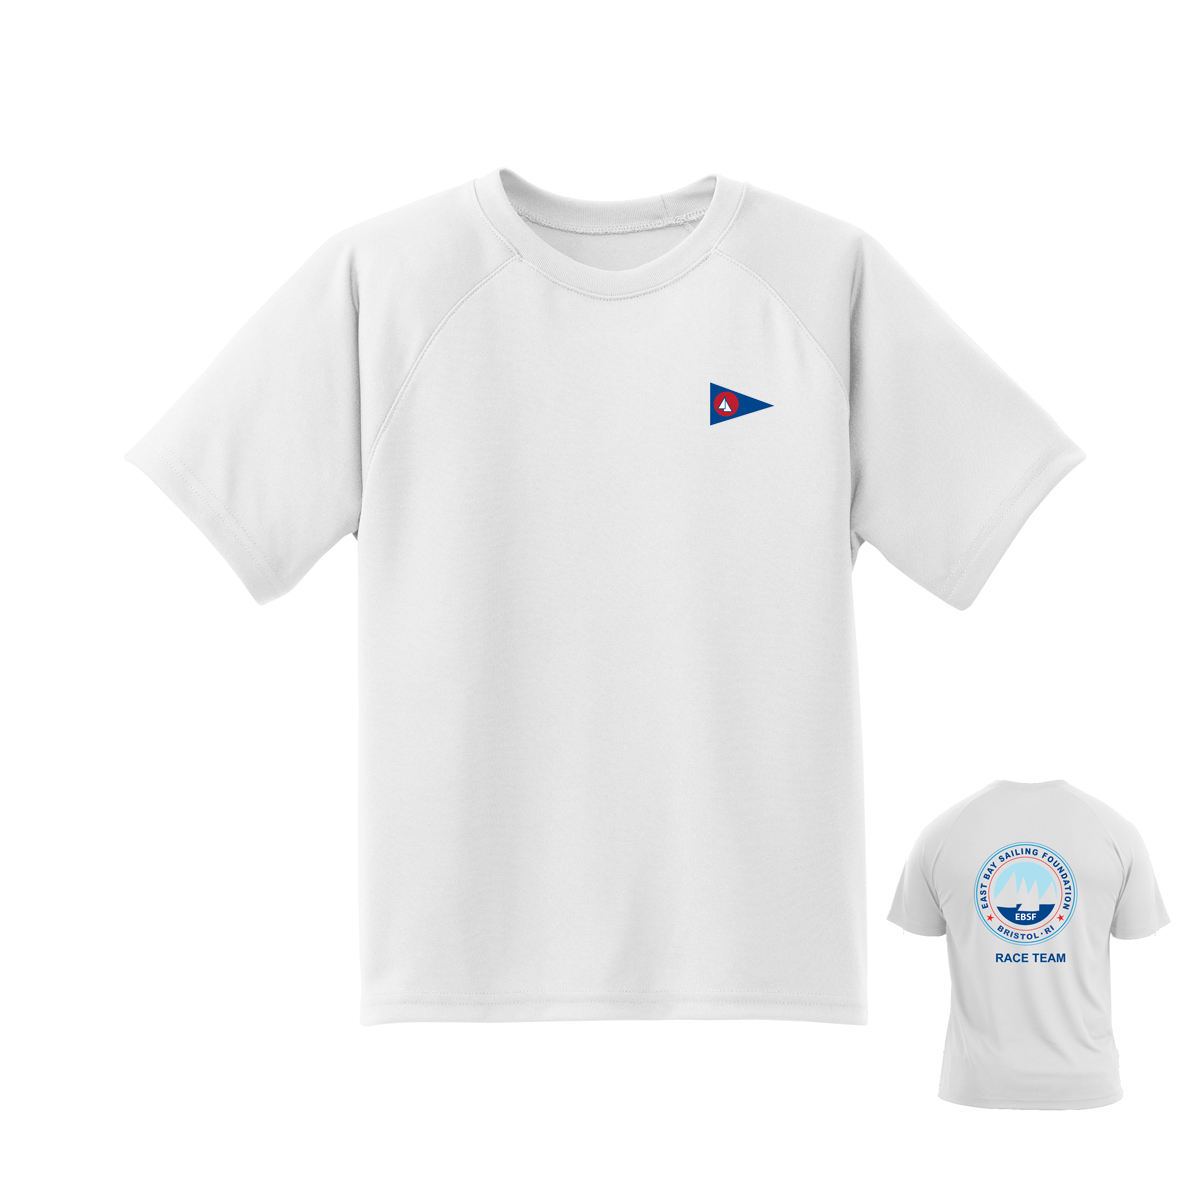 East Bay Sailing Foundation - Youth Race Team Short Sleeve Tech Tee